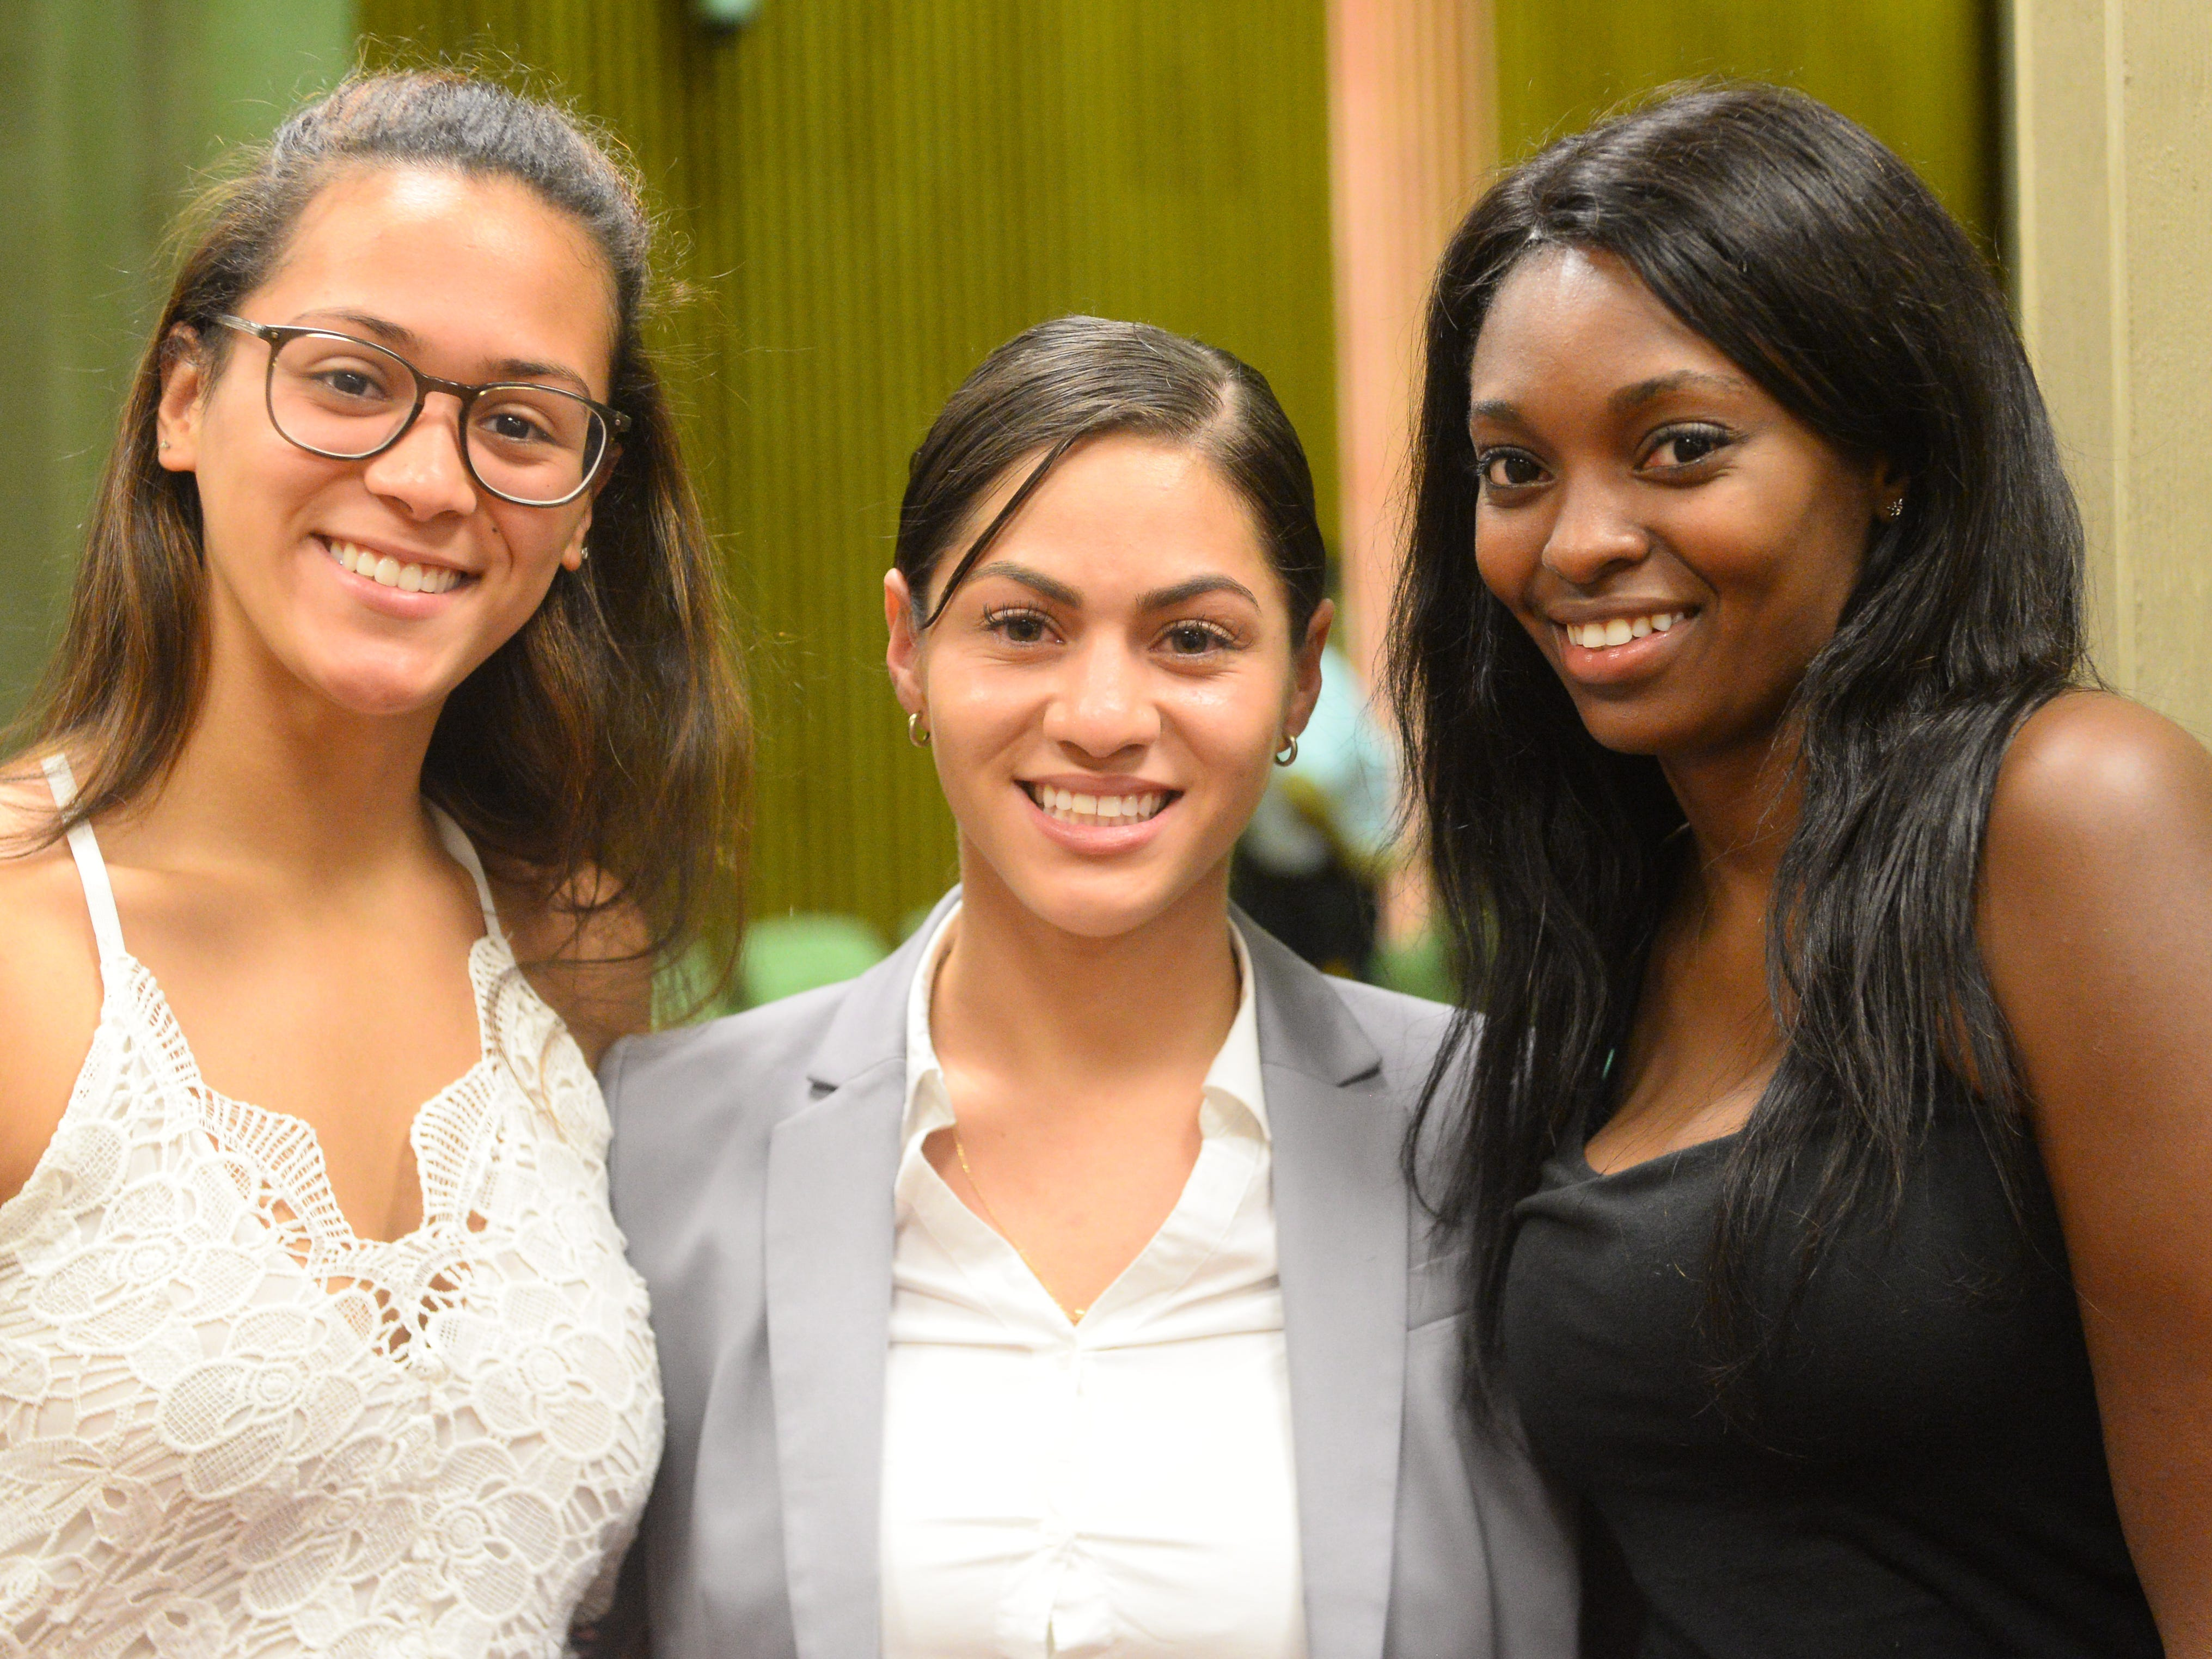 Kaylene Cosme (center) celebrates with her sister (left) Niyah Cosme and friend Cherelle James after being sworn in as a Vineland police recruit at Vineland City Hall on Thursday, August 2.